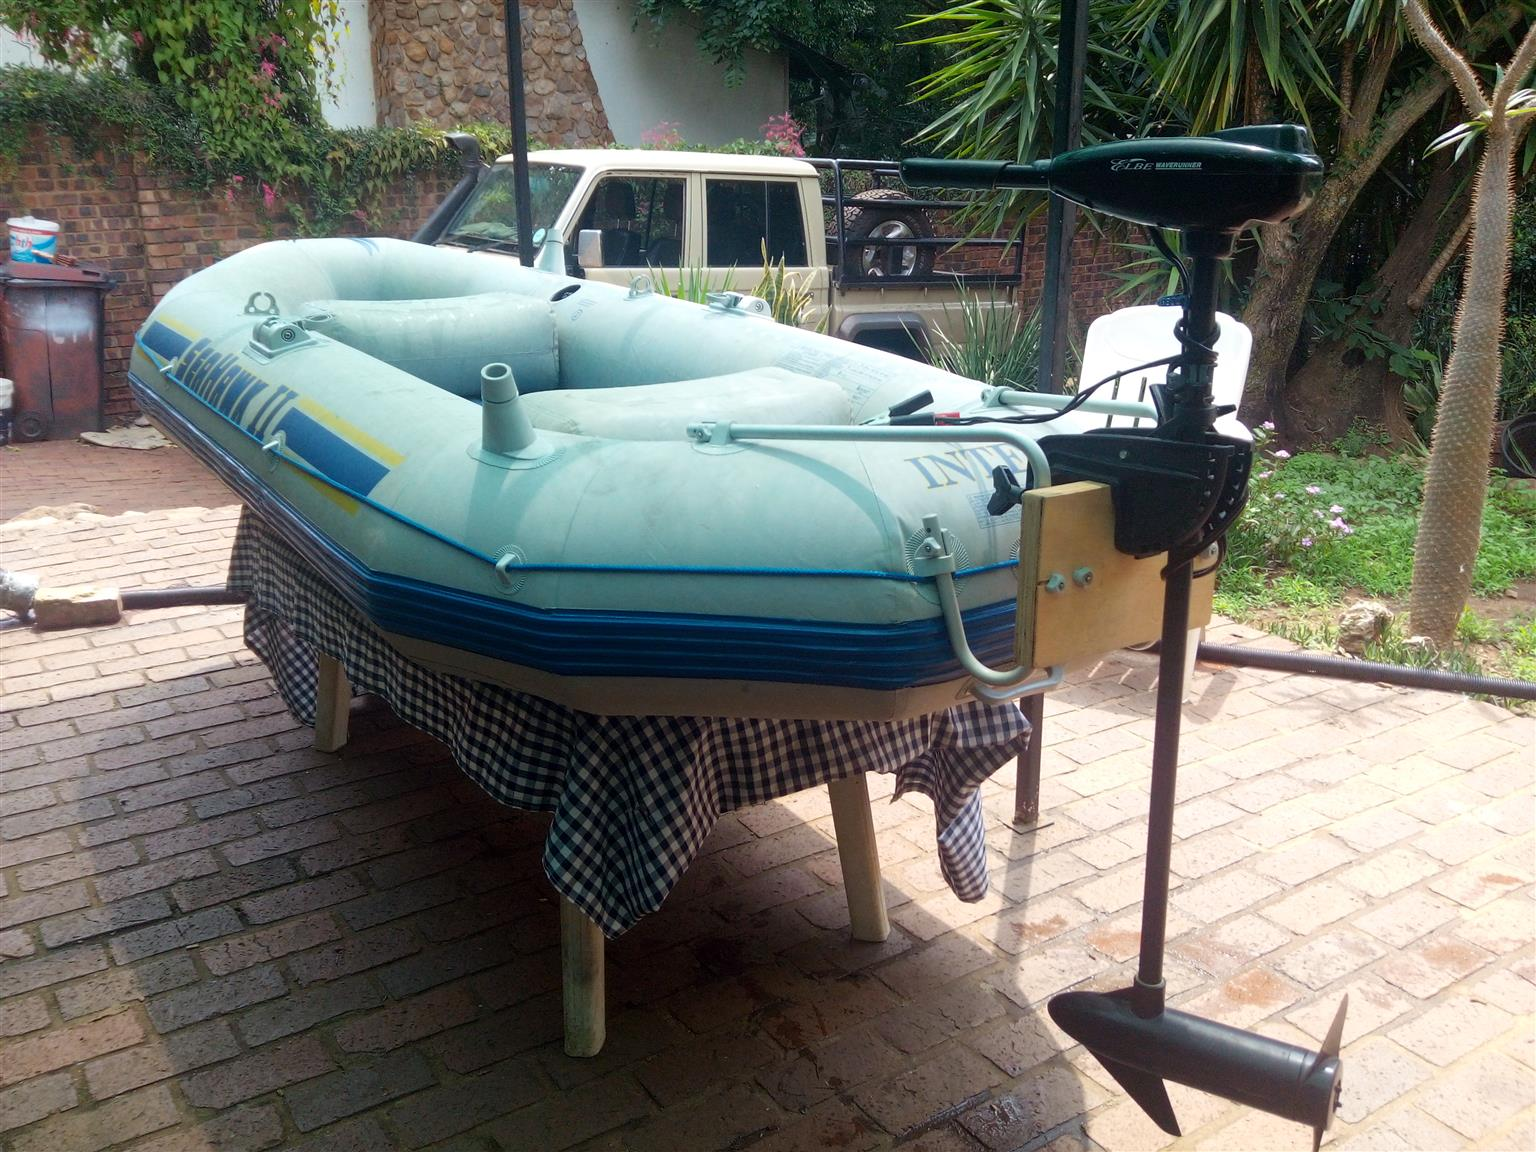 Intex Seahawk 2 Inflatable Boat for Sale! With Electric Motor